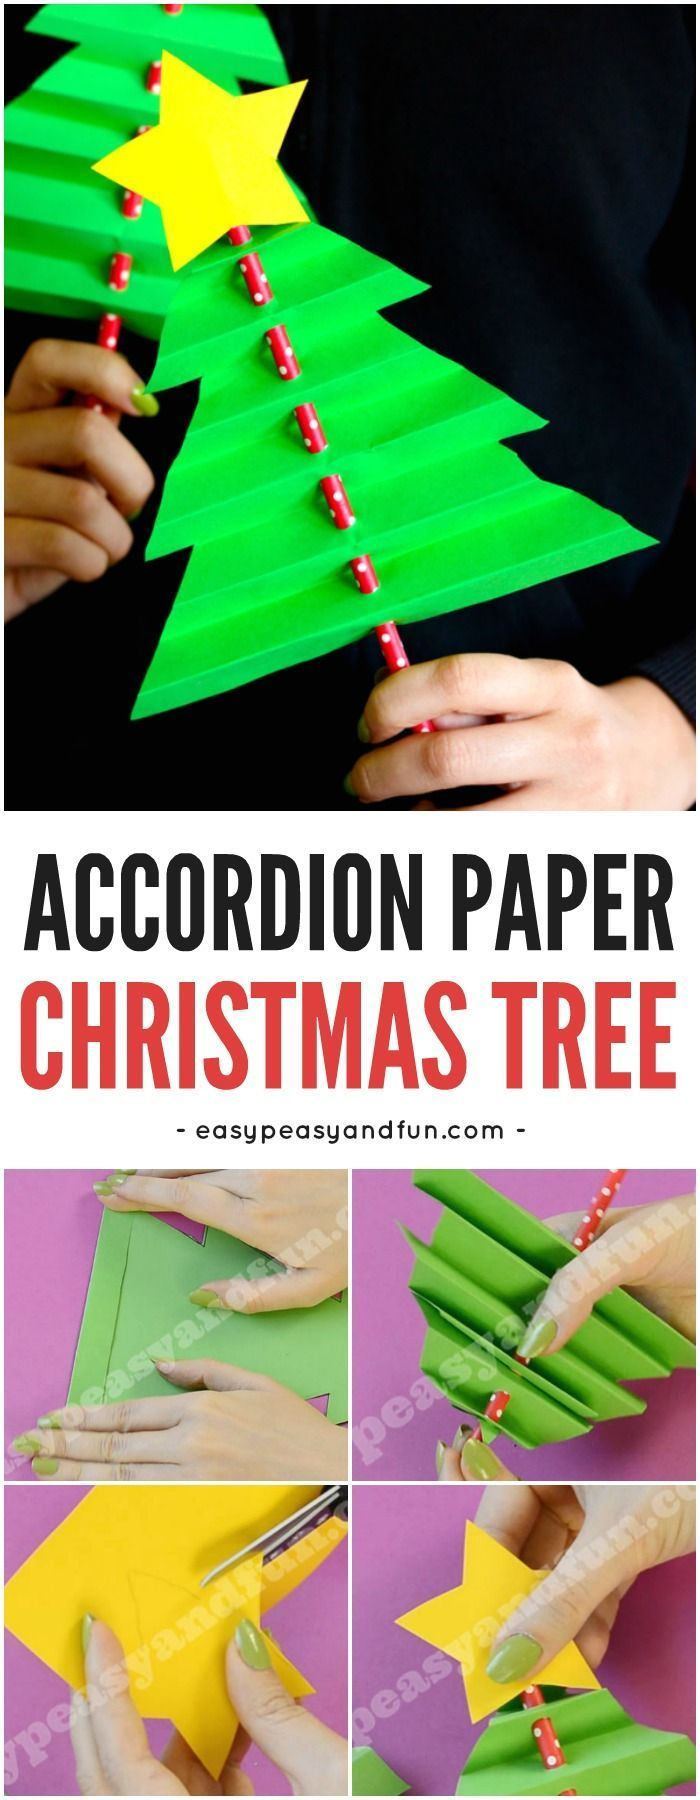 Accordion Paper Christmas Tree. Simple Christmas Craft for Kids with a Printable Template.